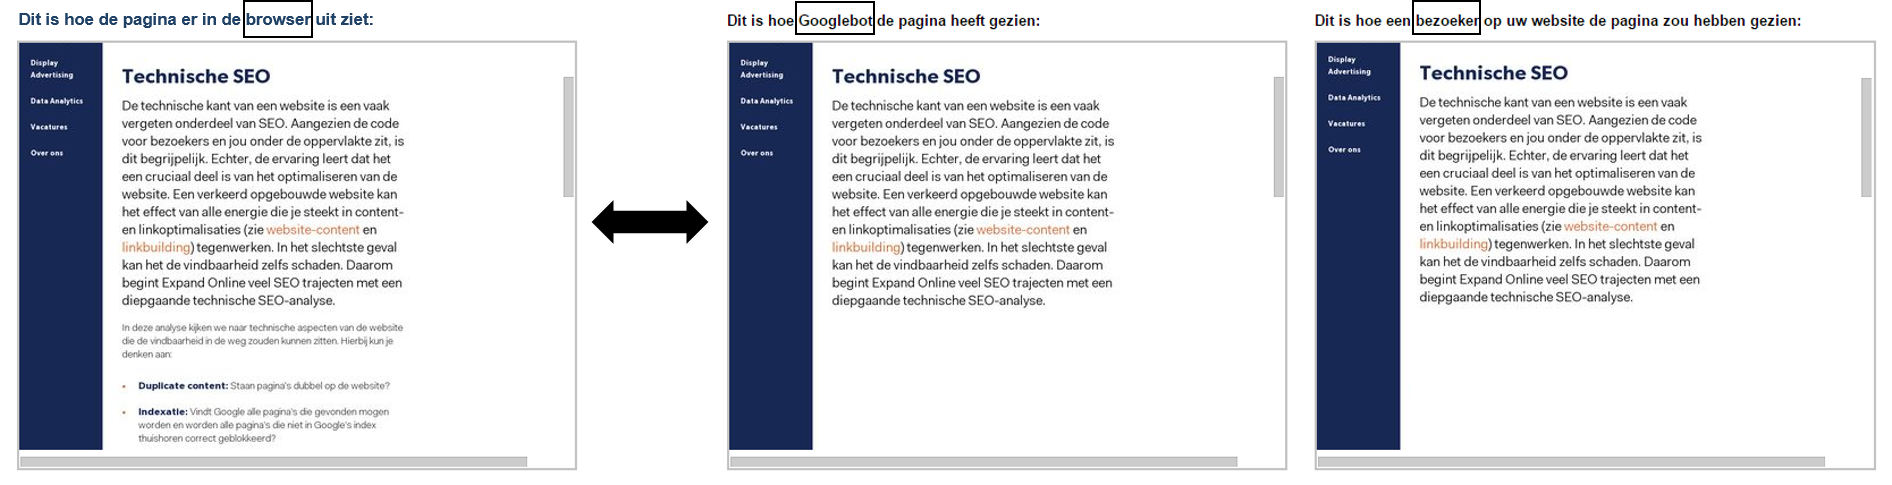 blog-fetchen-als-google_1